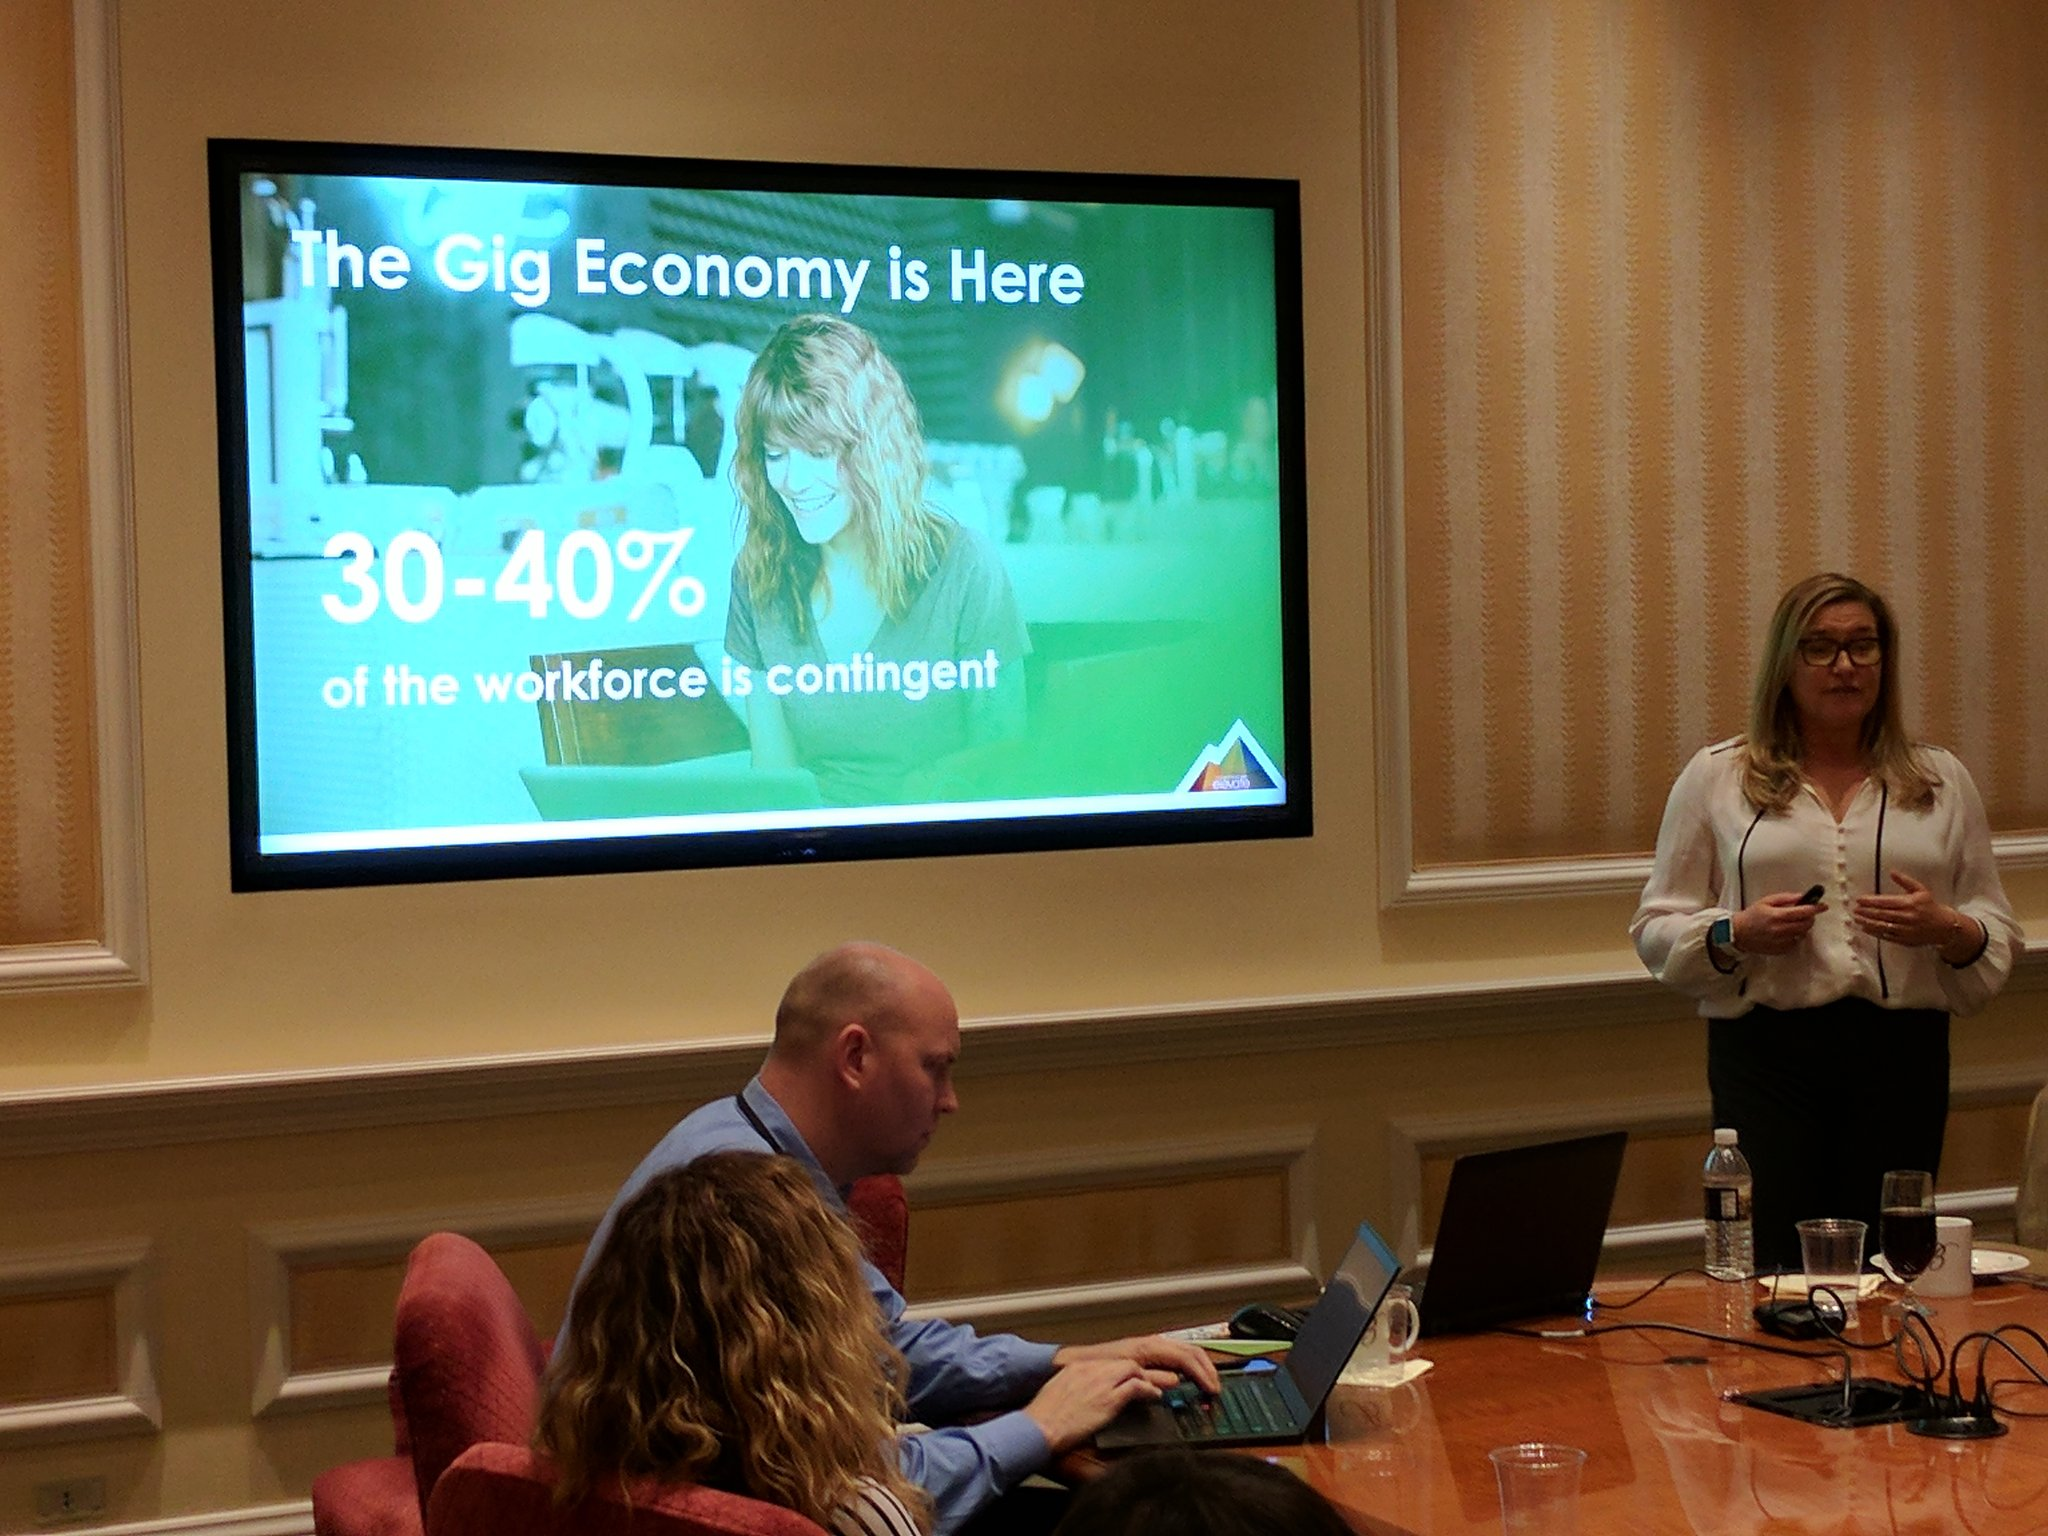 .@cecilehcm tackles the #gigeconomy - 30-40% of the workforce is going to be contingent. #Ulticonnect https://t.co/7FW03vbw9L